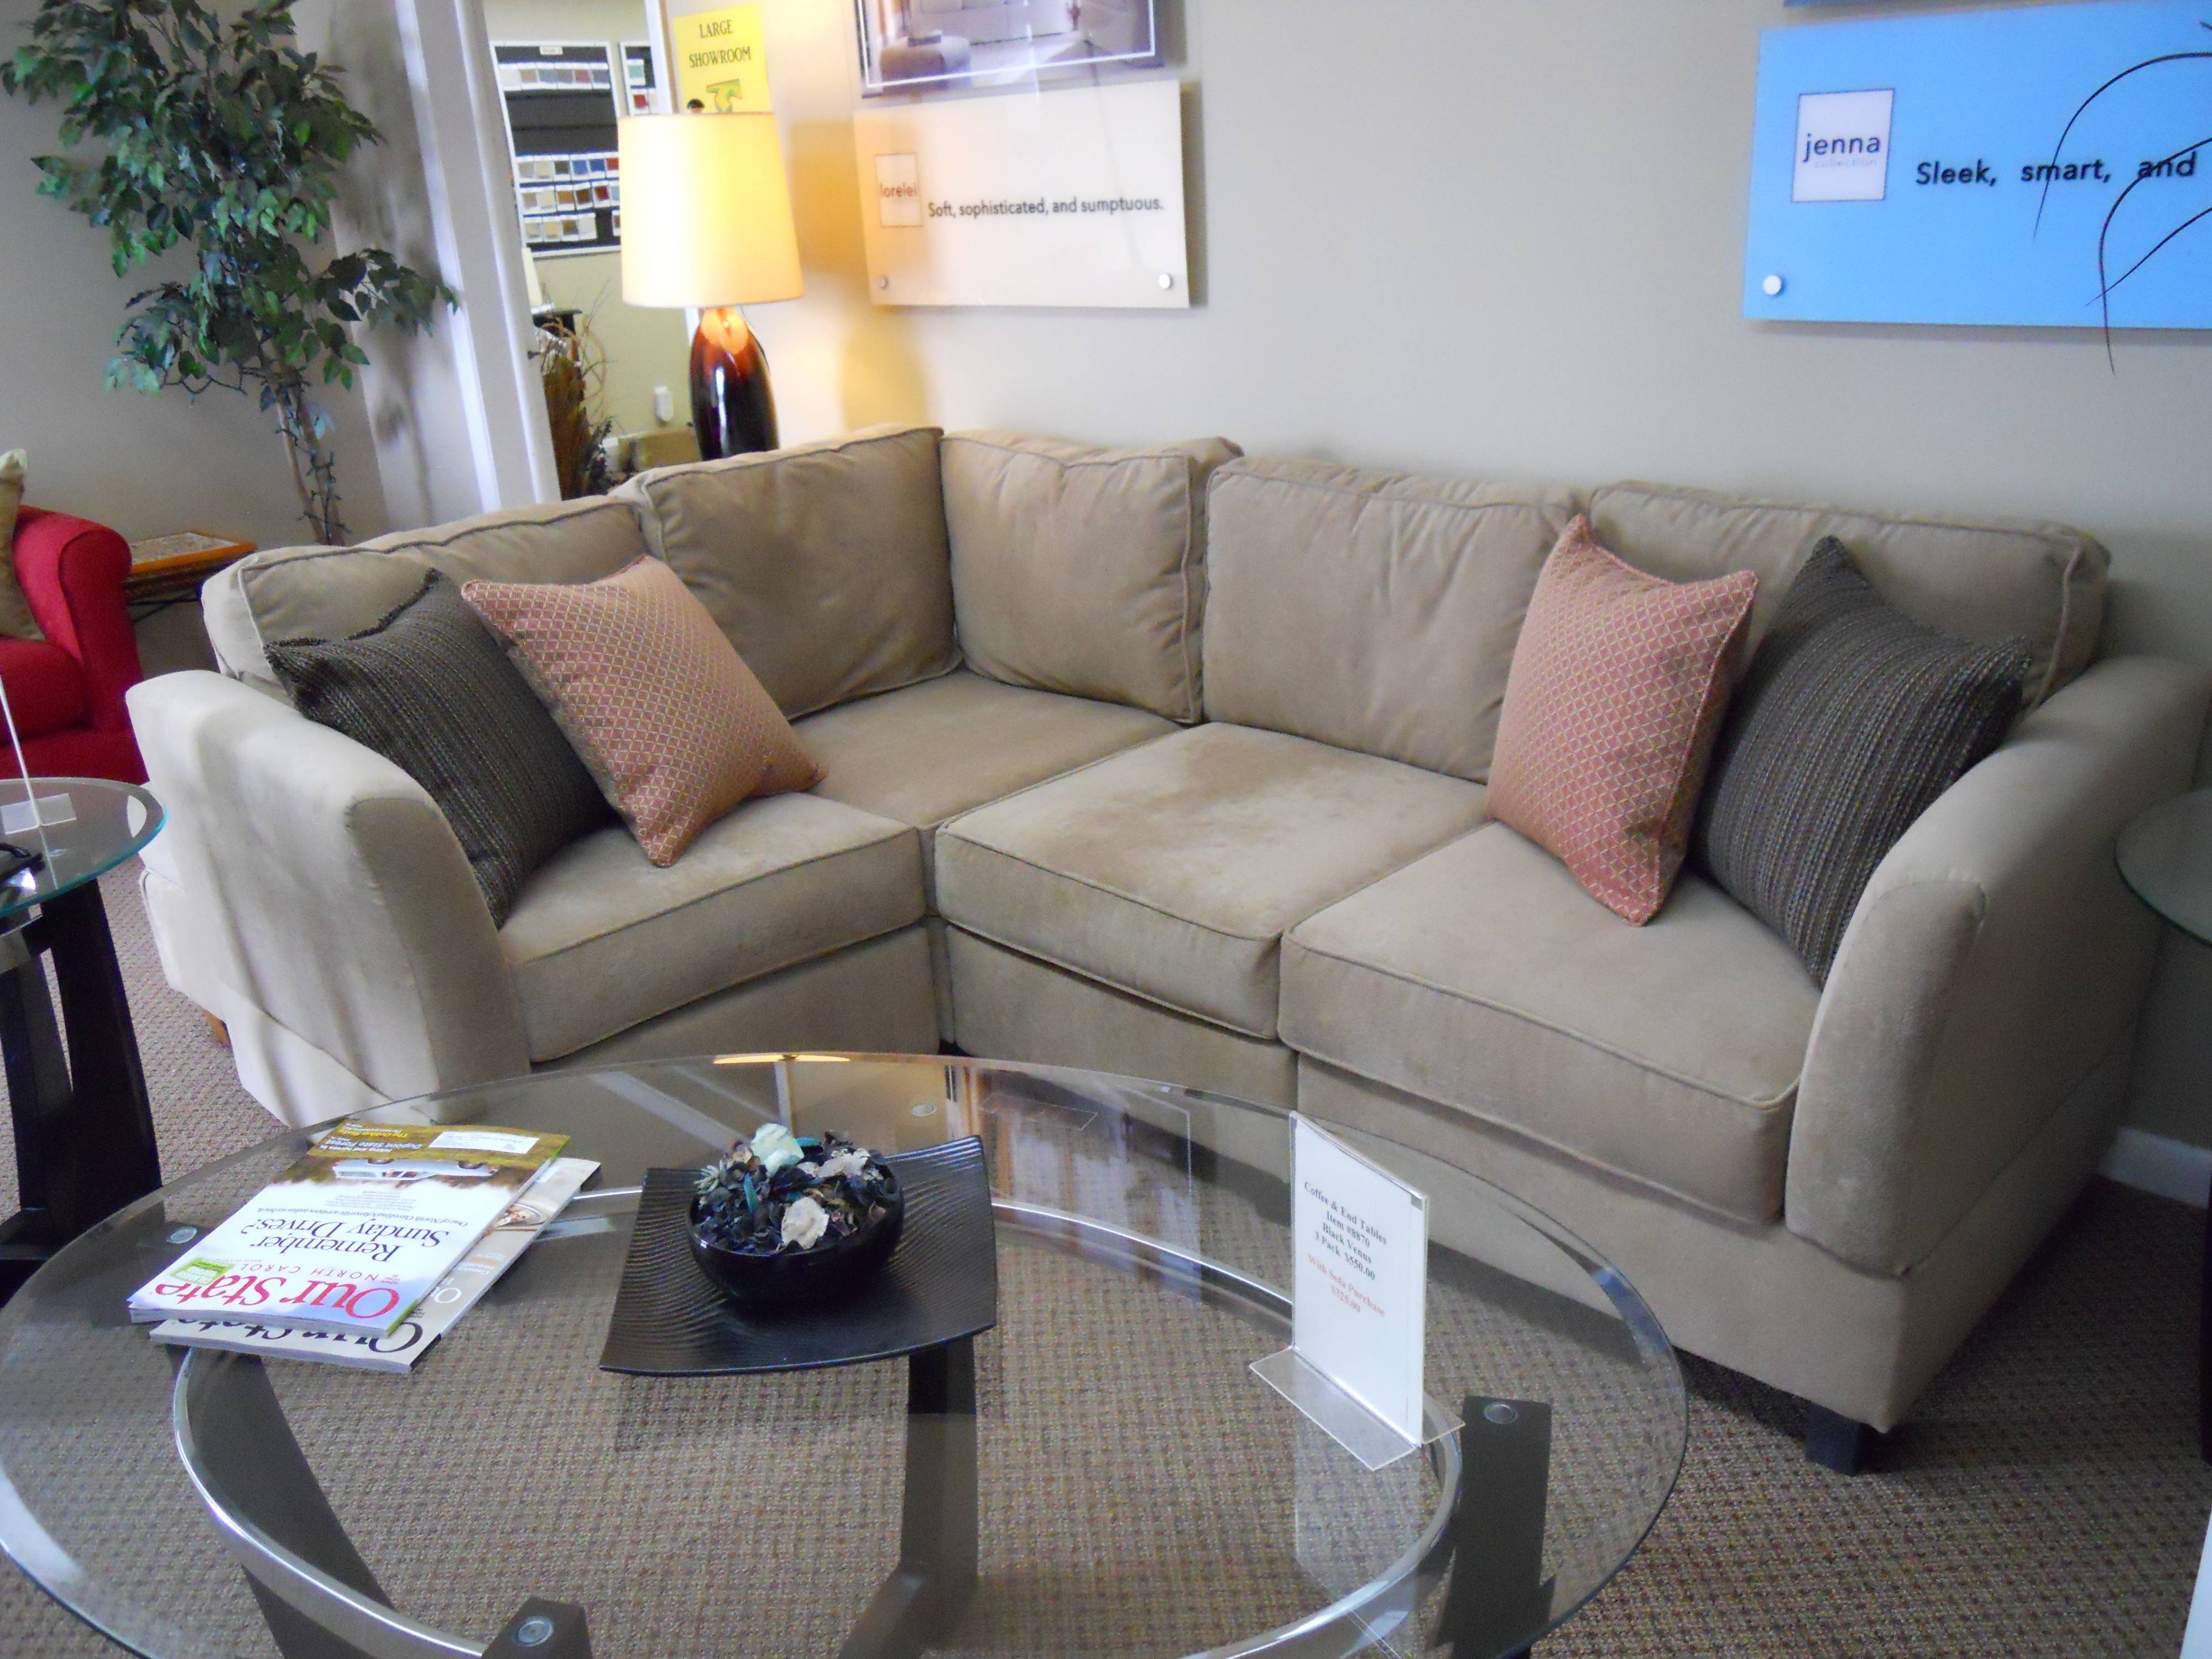 Modular Sectional Sofas Small Scale | Centerfieldbar inside Small Scale Sofas (Image 3 of 15)